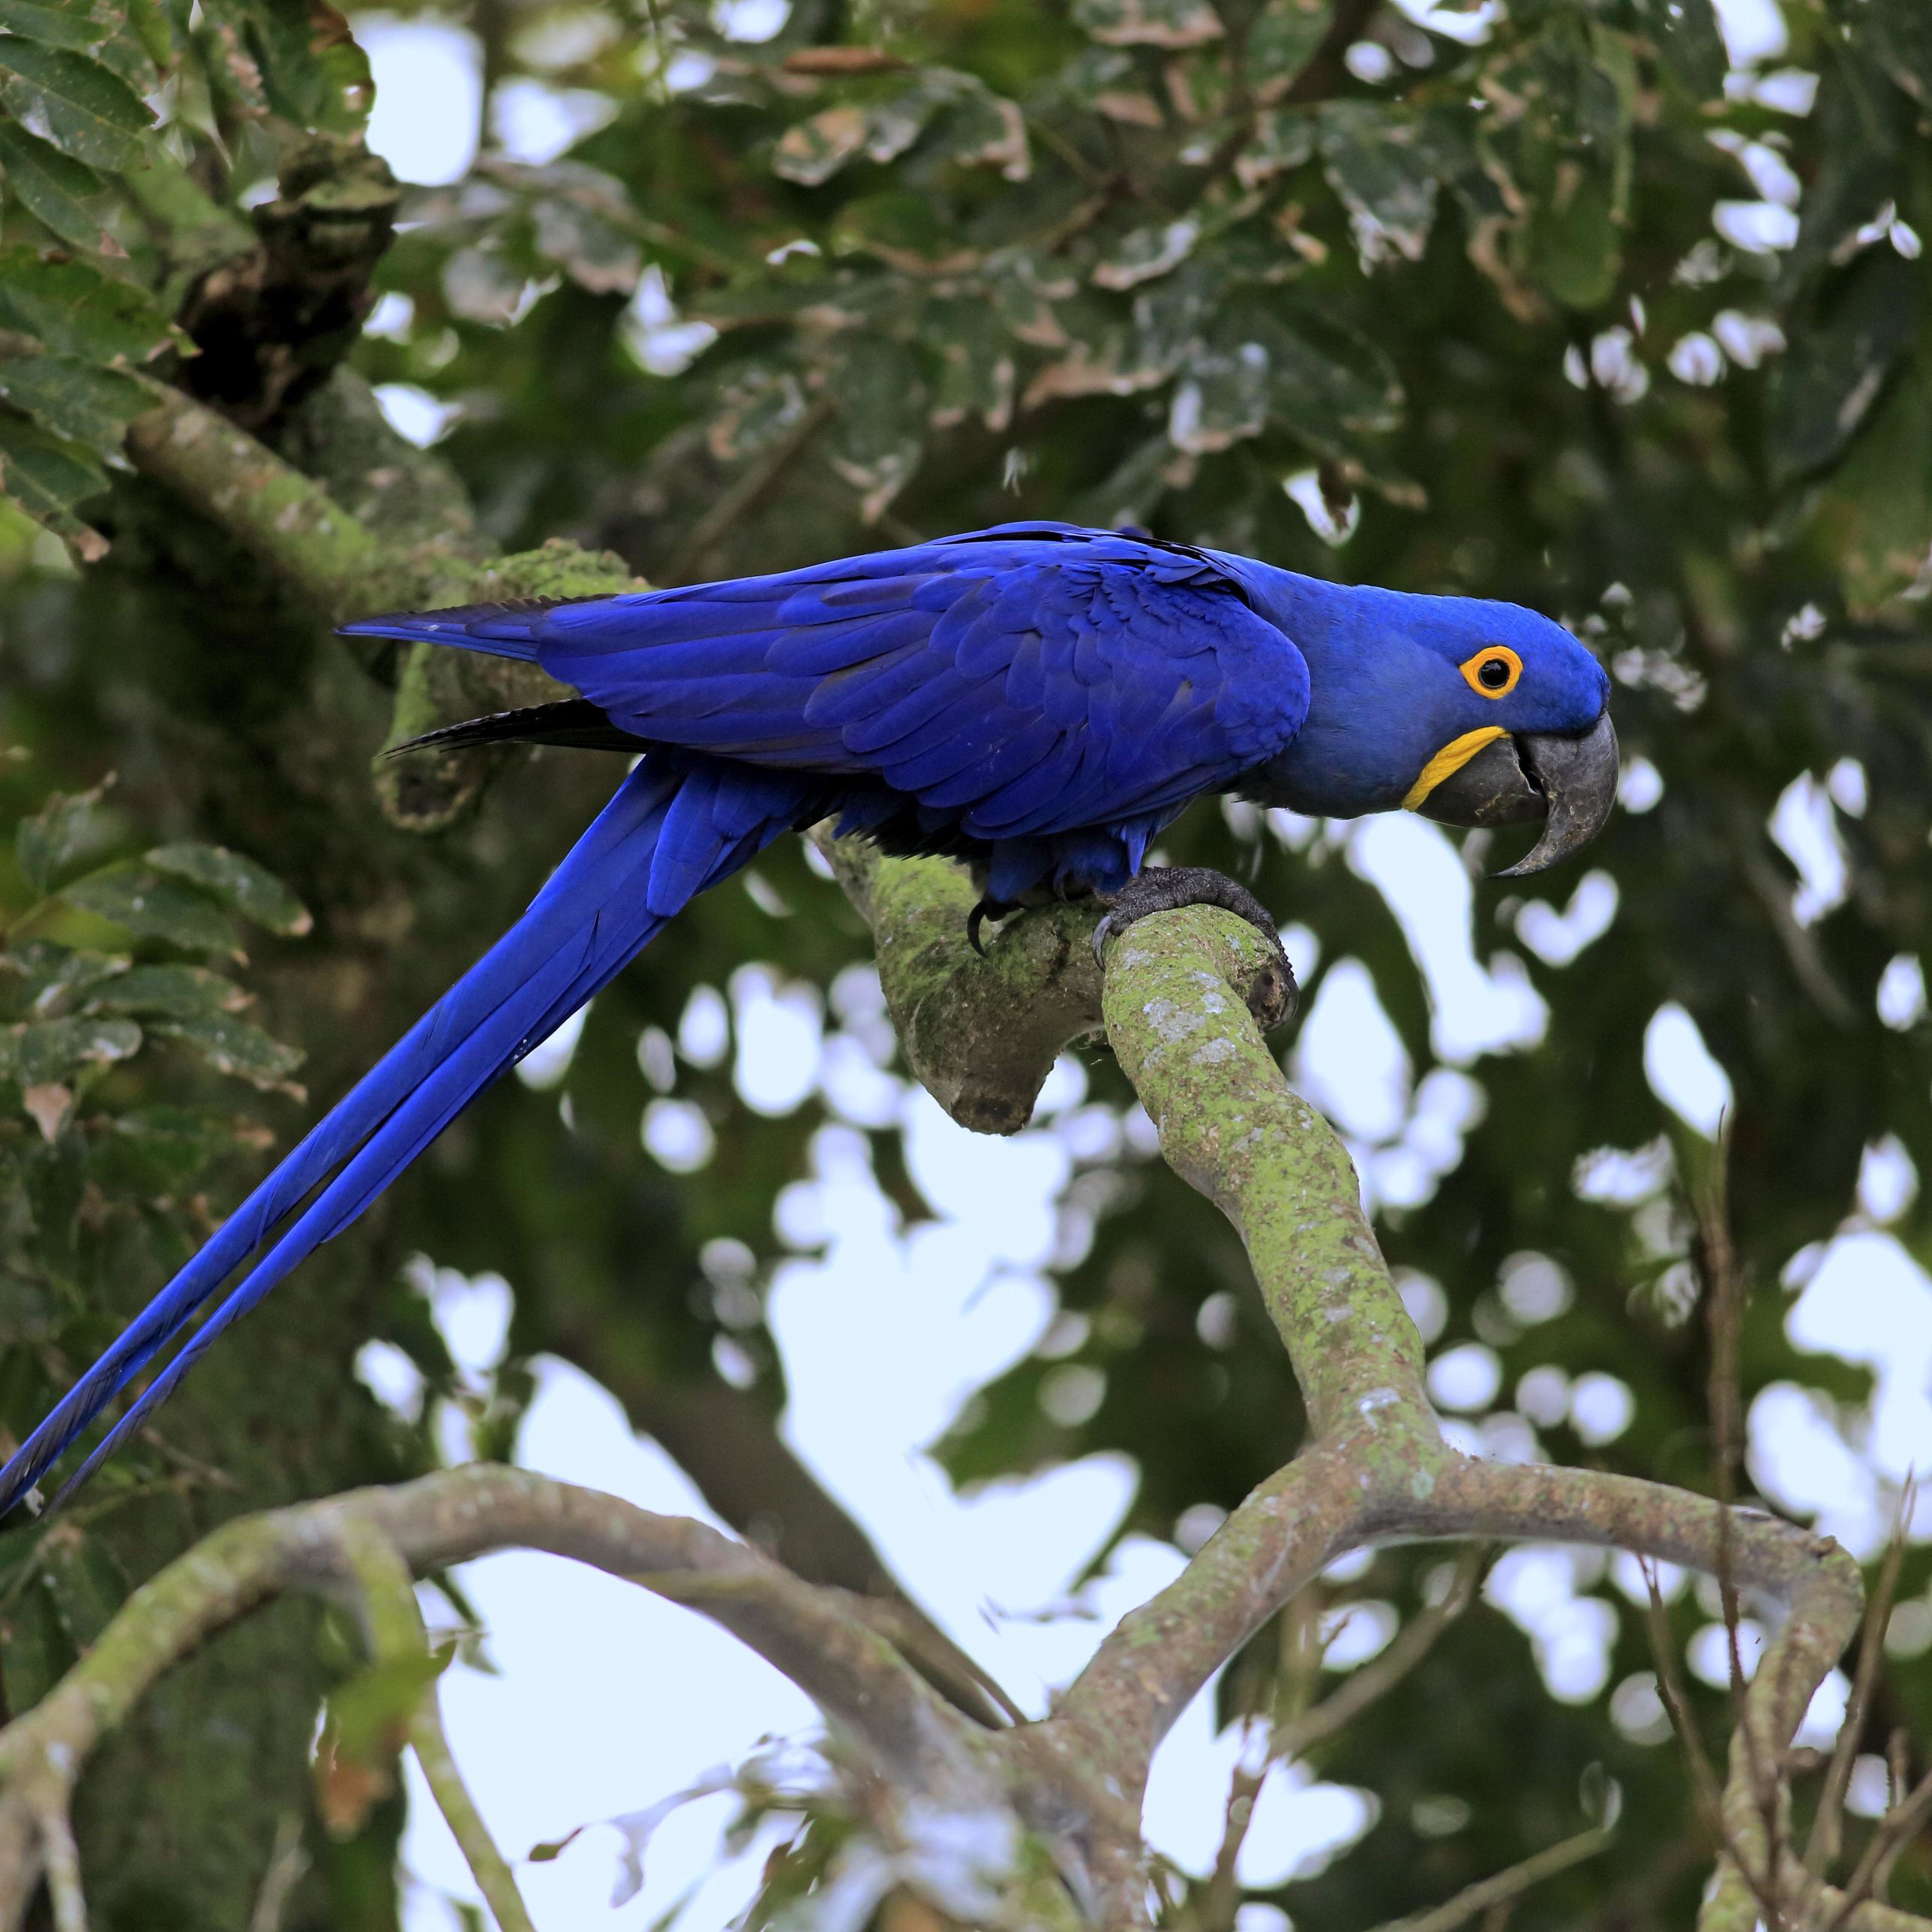 5 Fun Facts About the Macaws